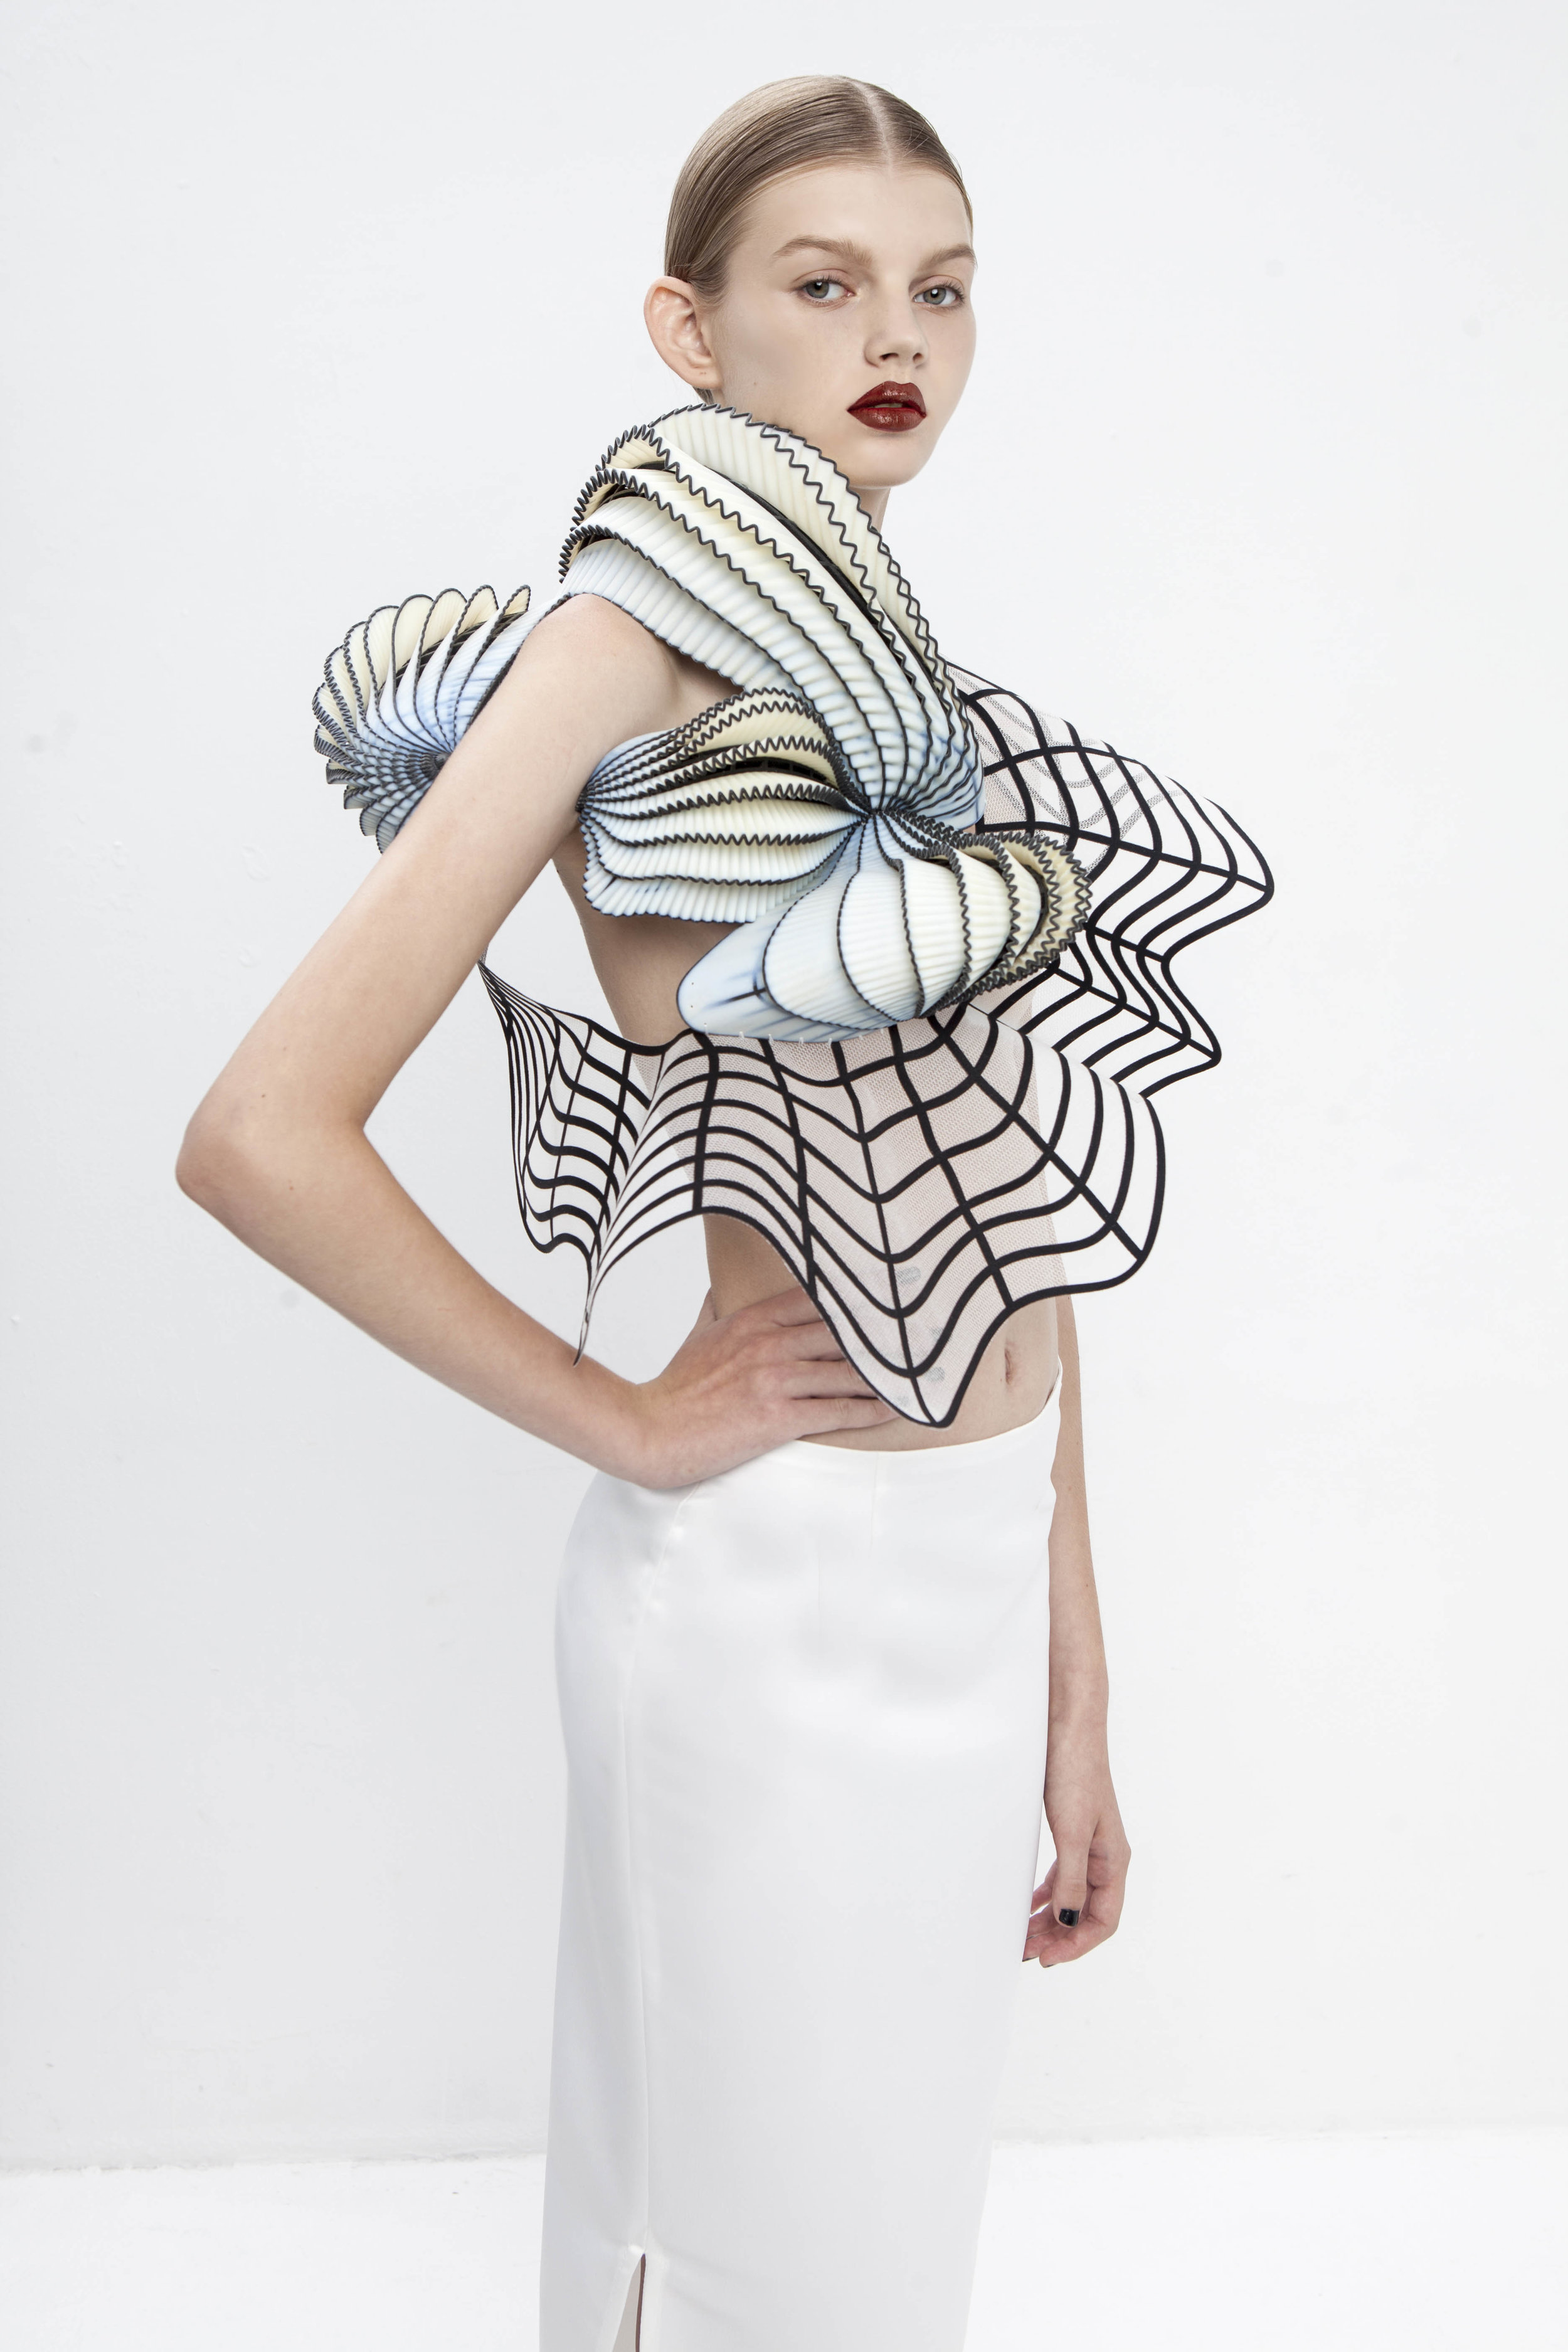 Stratasys 3D printed fashion piece, designed by Noa Raviv, produced on Stratasys' Objet500 Connex Multi-material 3D Printer. Photo credit: Ron Kedmi